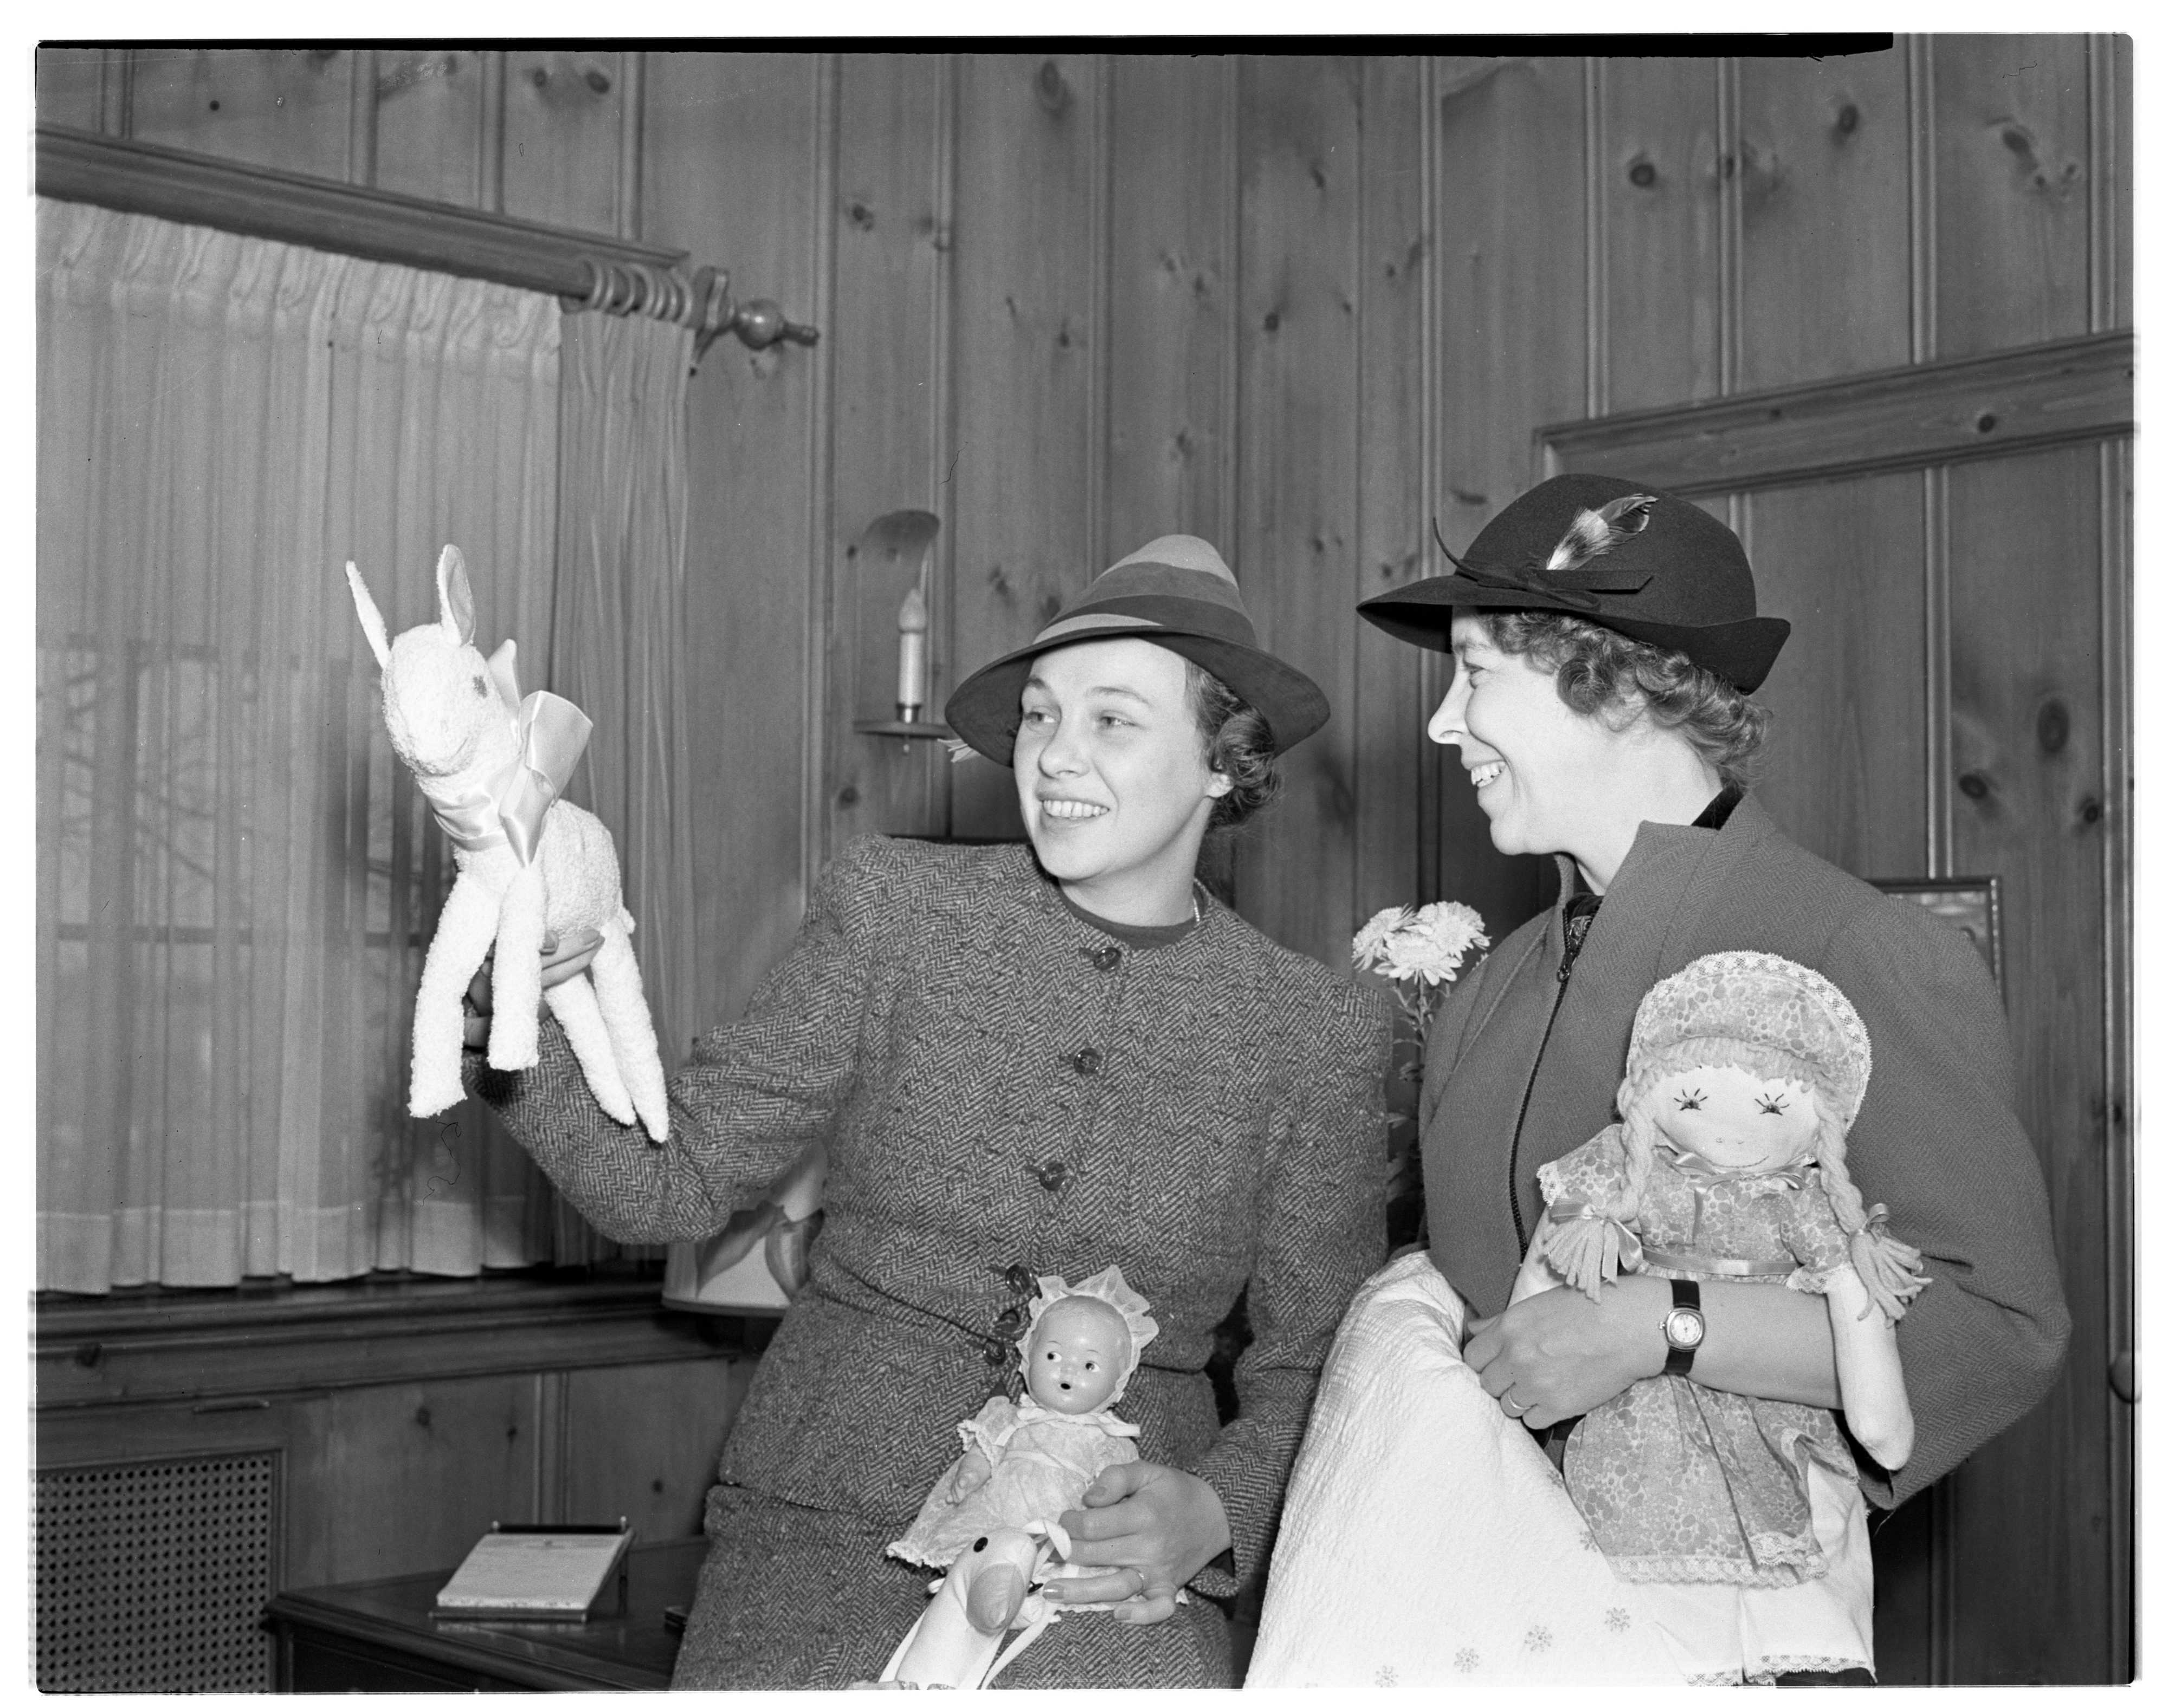 League of St. Andrew's Prepares For Christmas Fair, November 1938 image